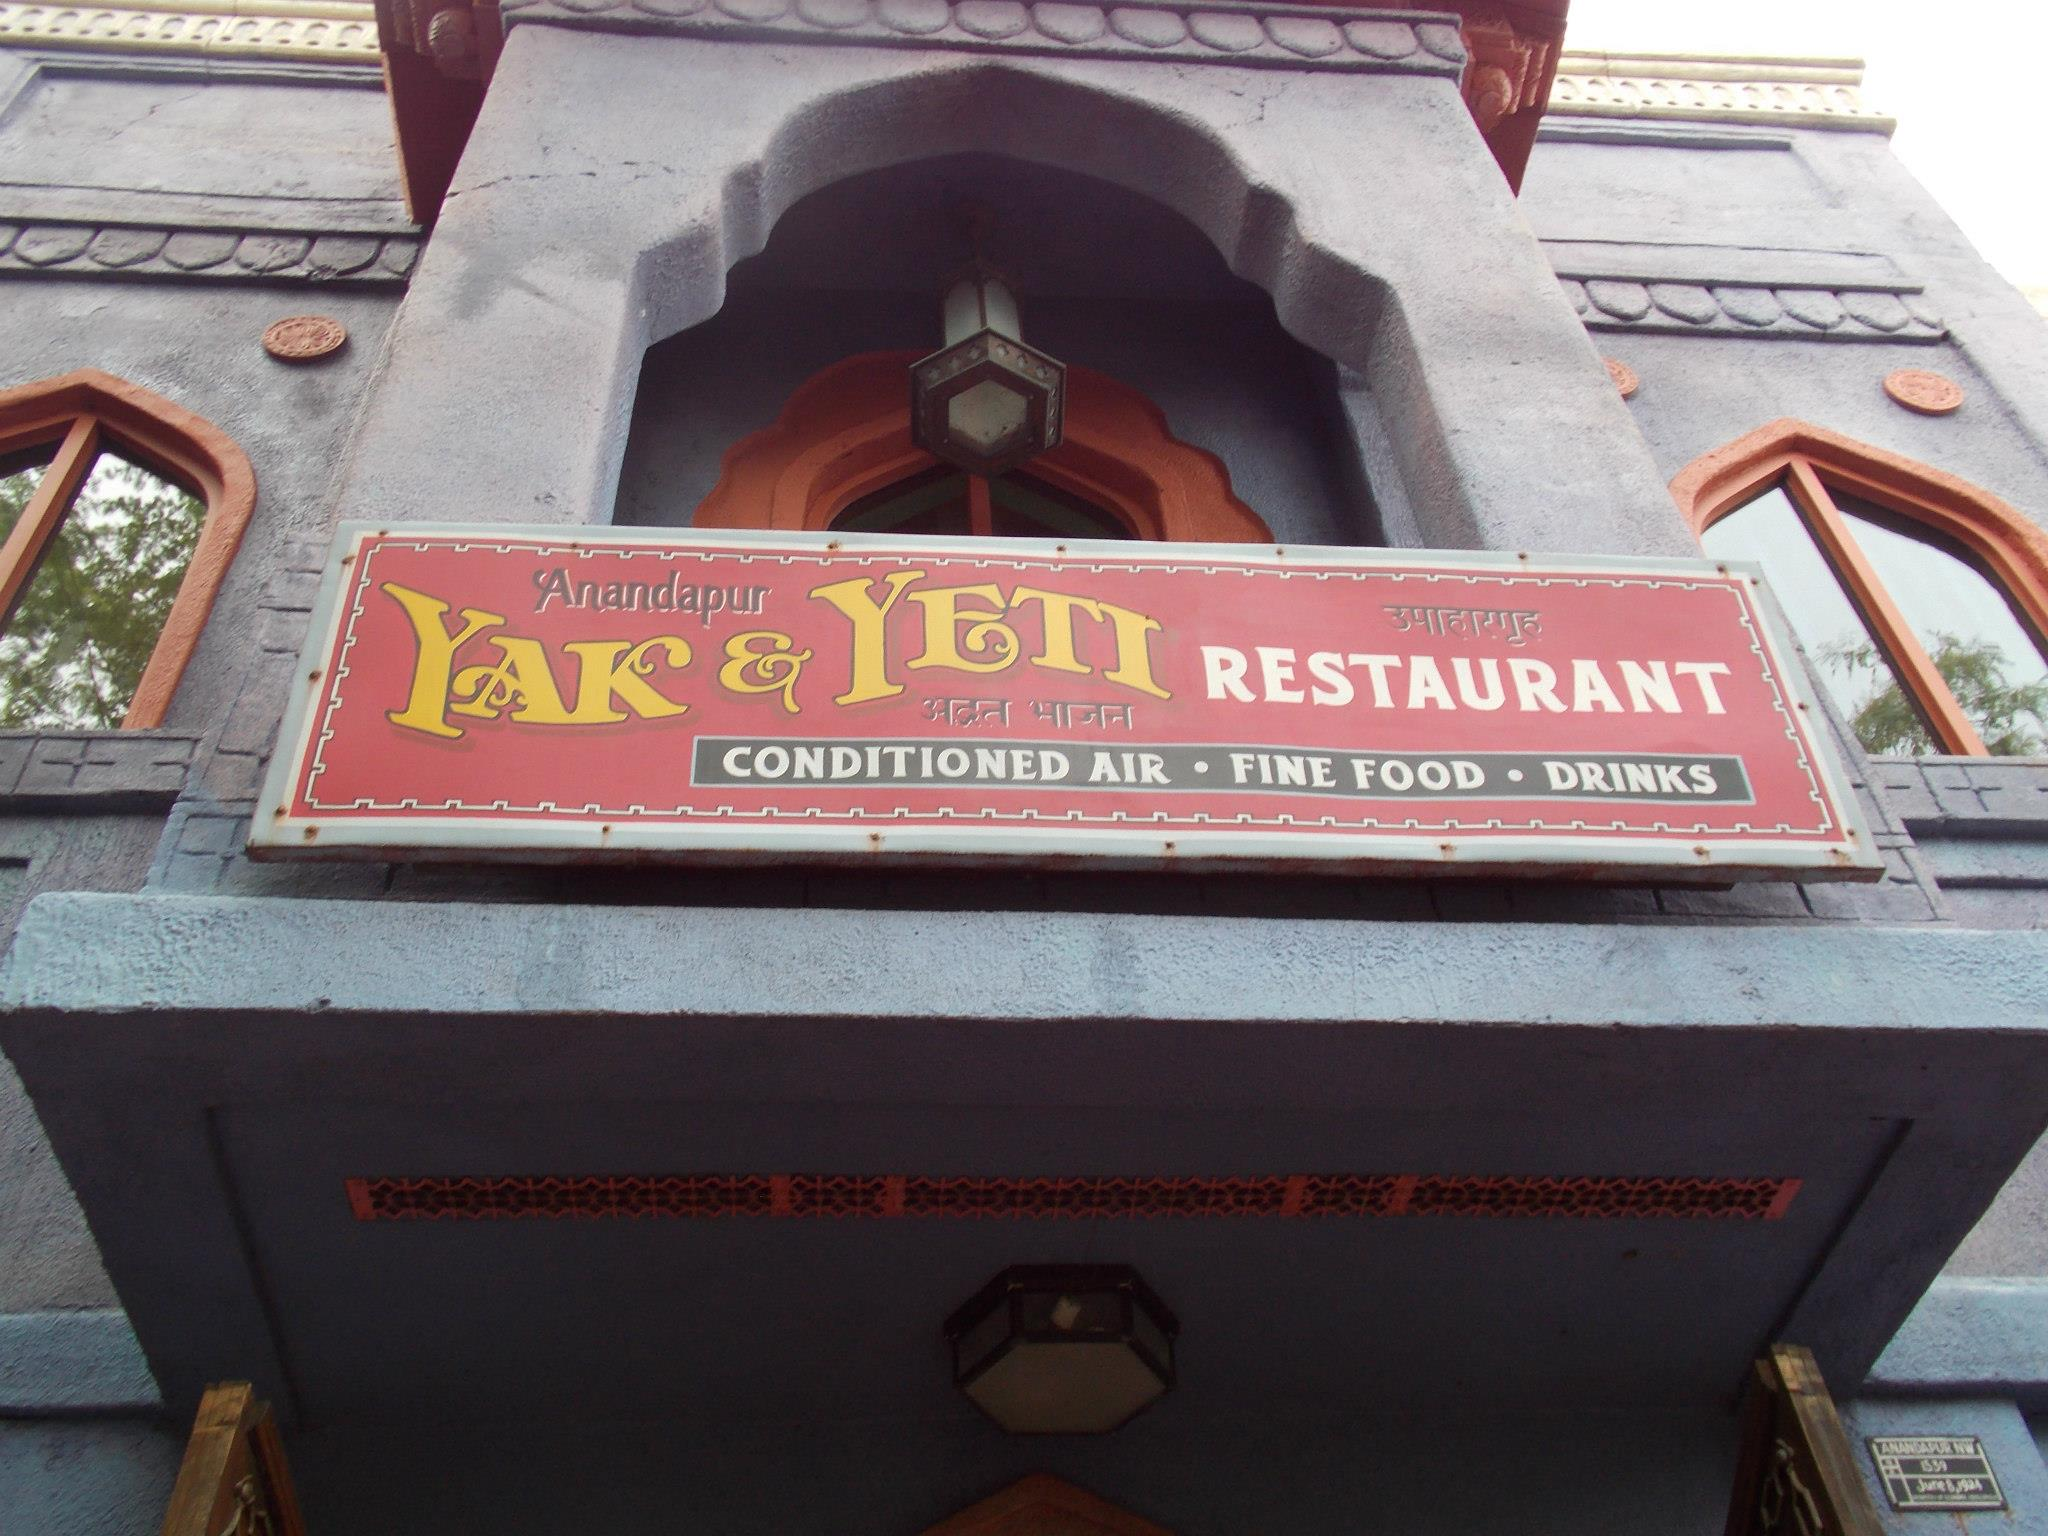 Dining at Yak and Yeti with food allergies